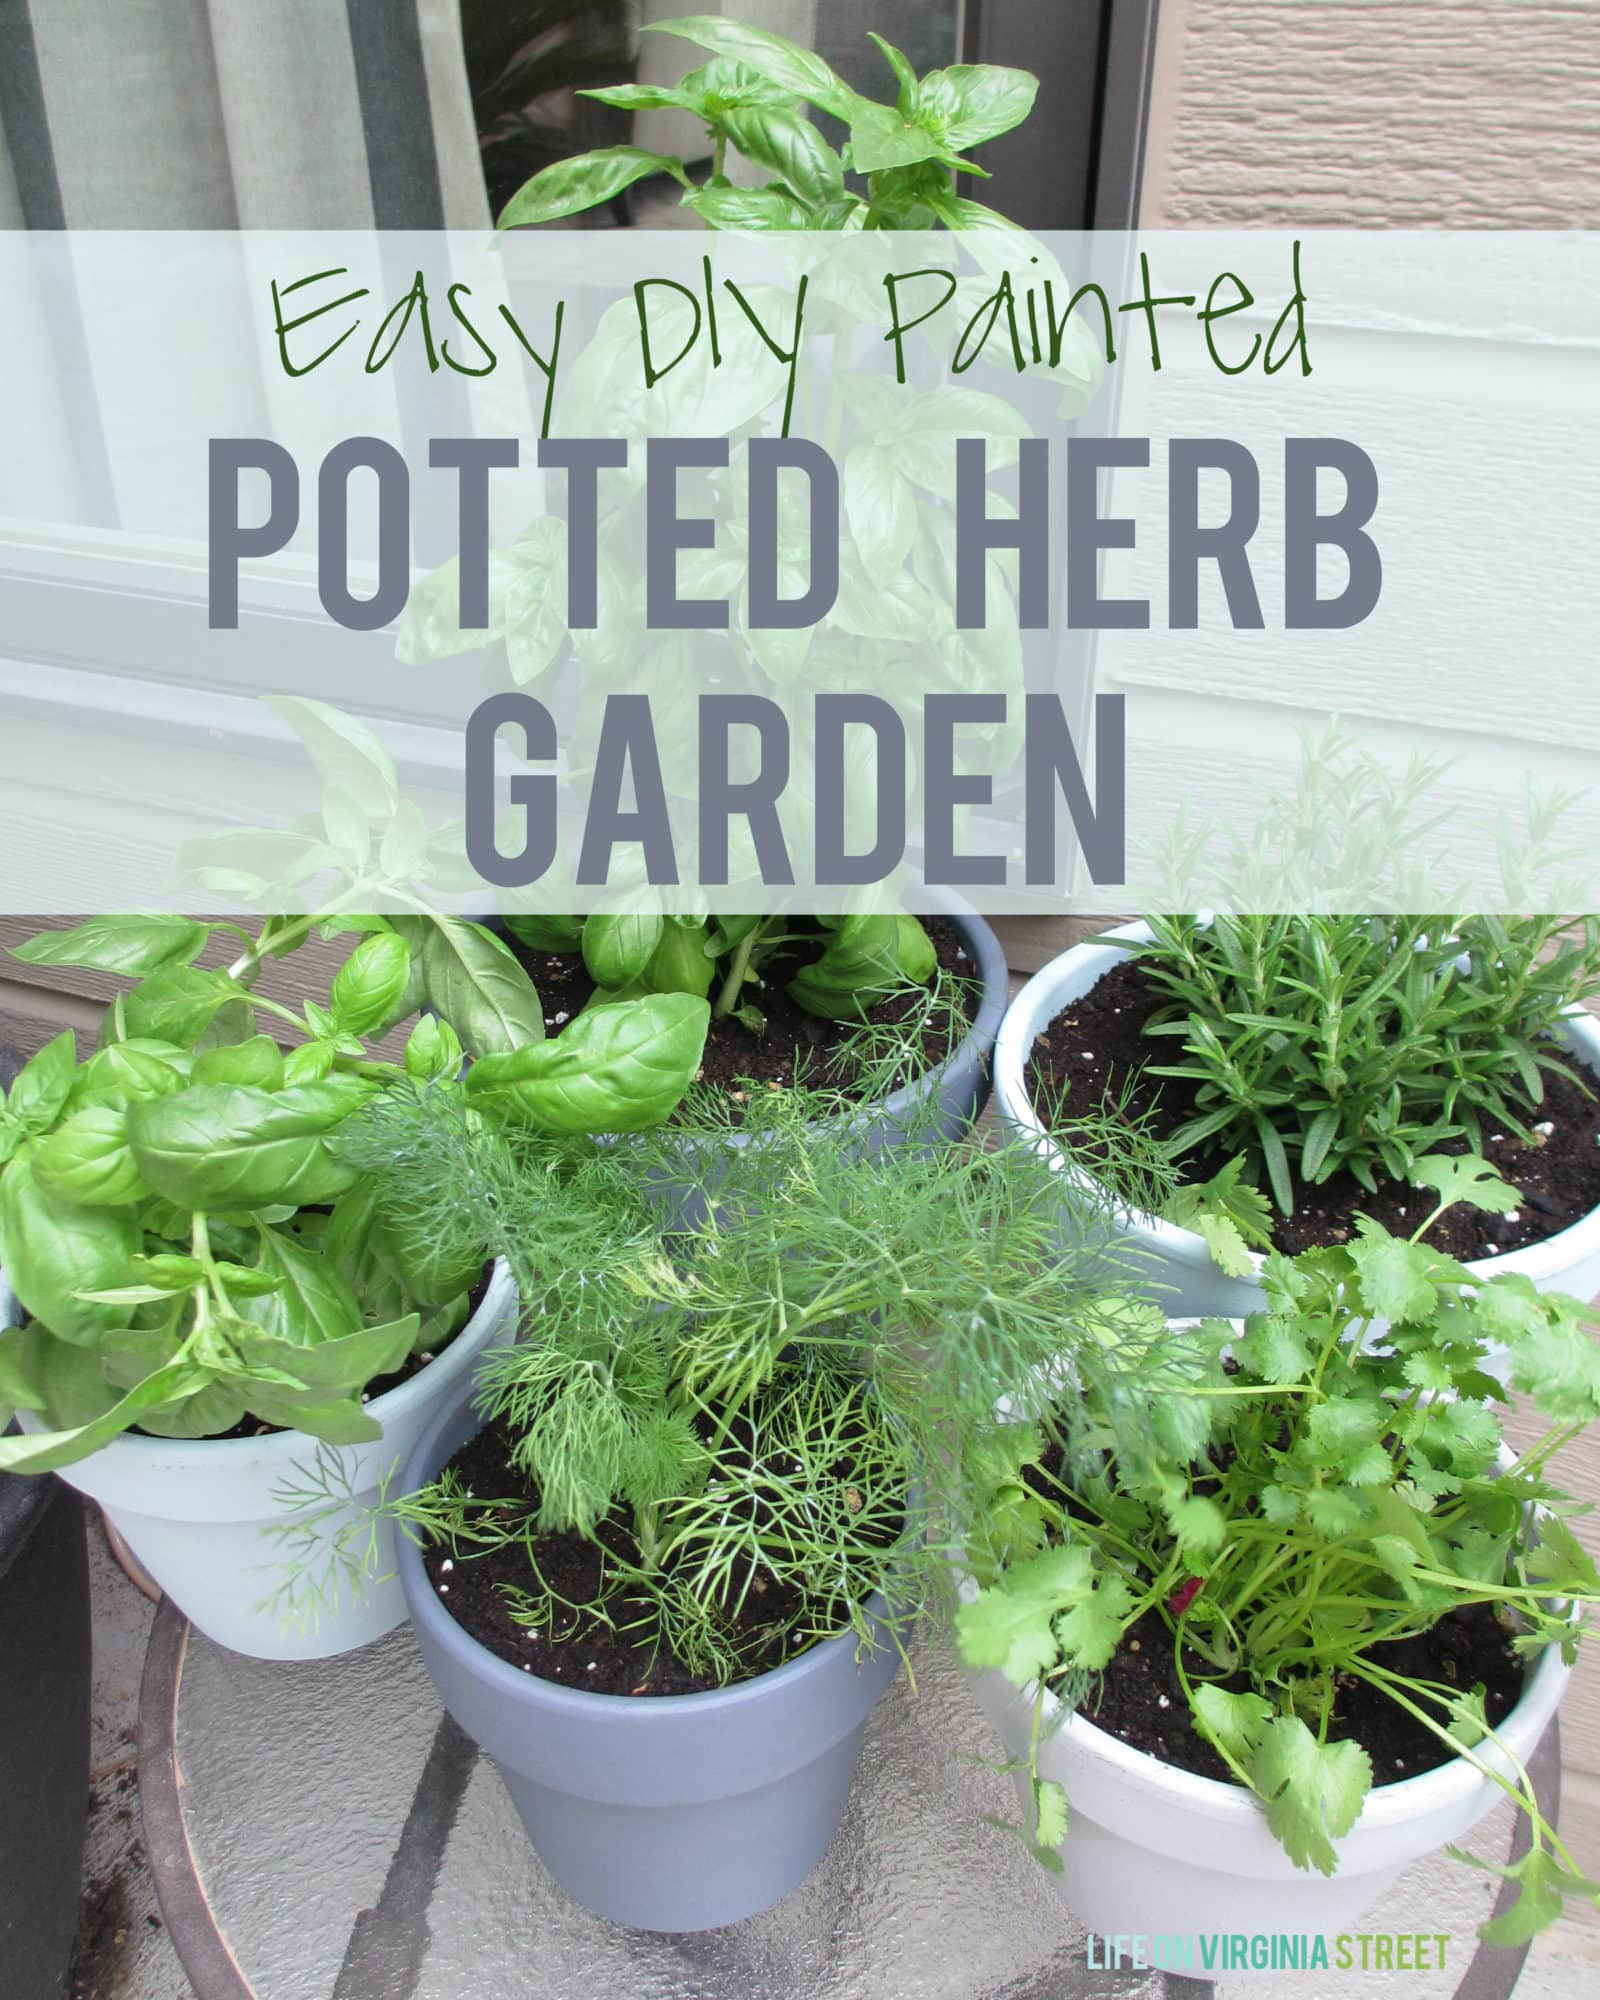 Potted Herb Garden Ideas how to grow your own one pot herb garden Diy Painted Potted Herb Garden